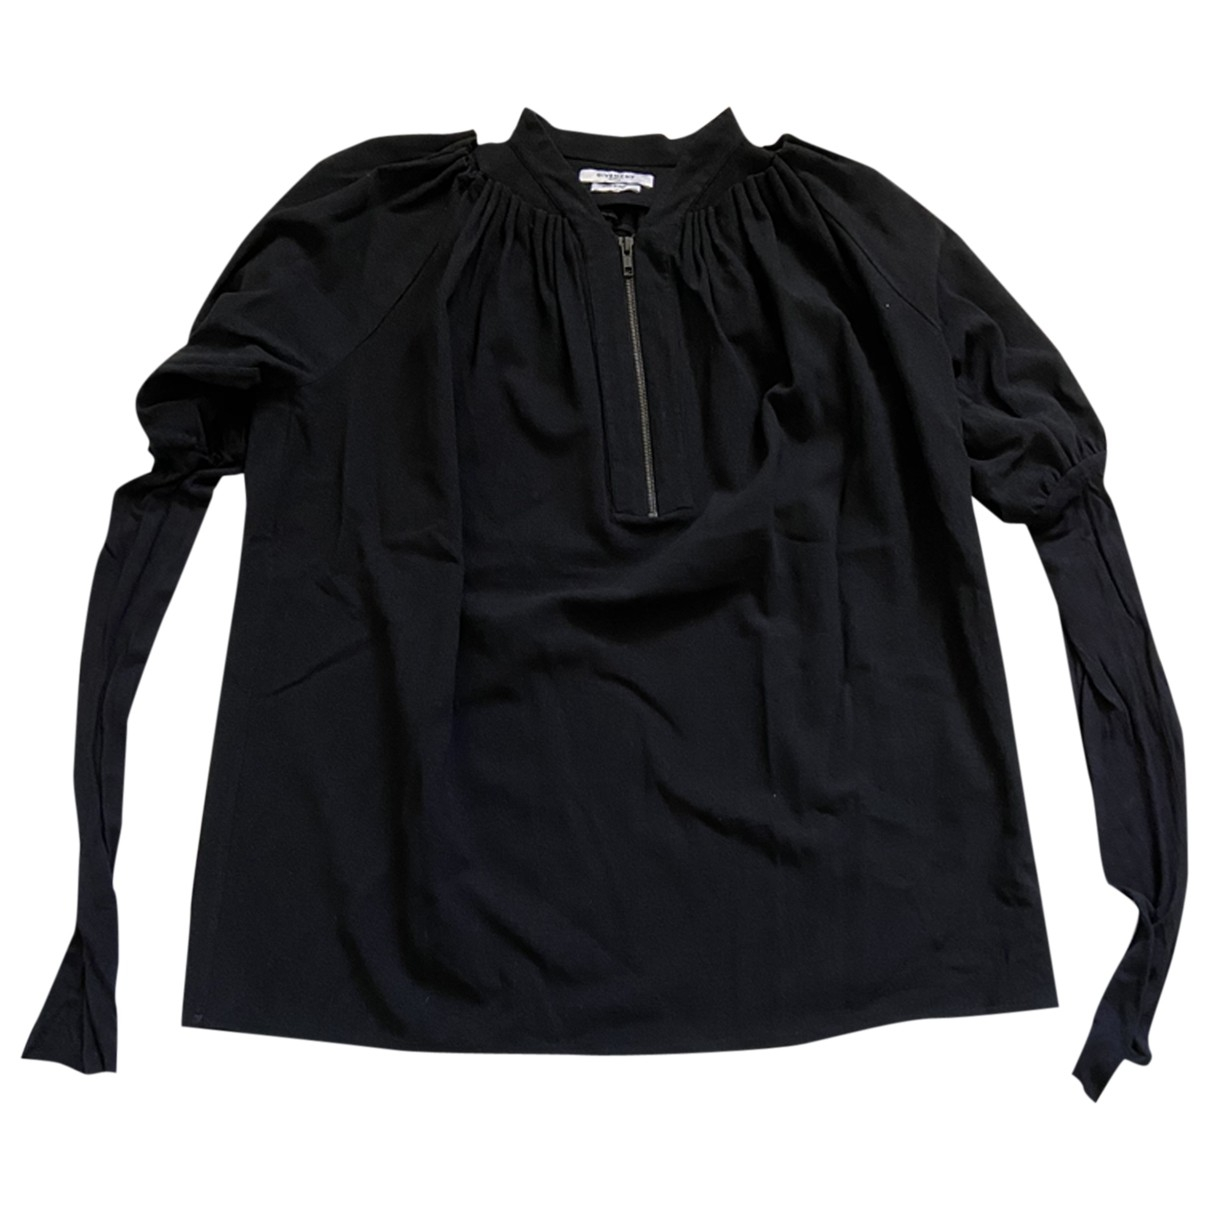 Givenchy \N Black Wool  top for Women 36 FR